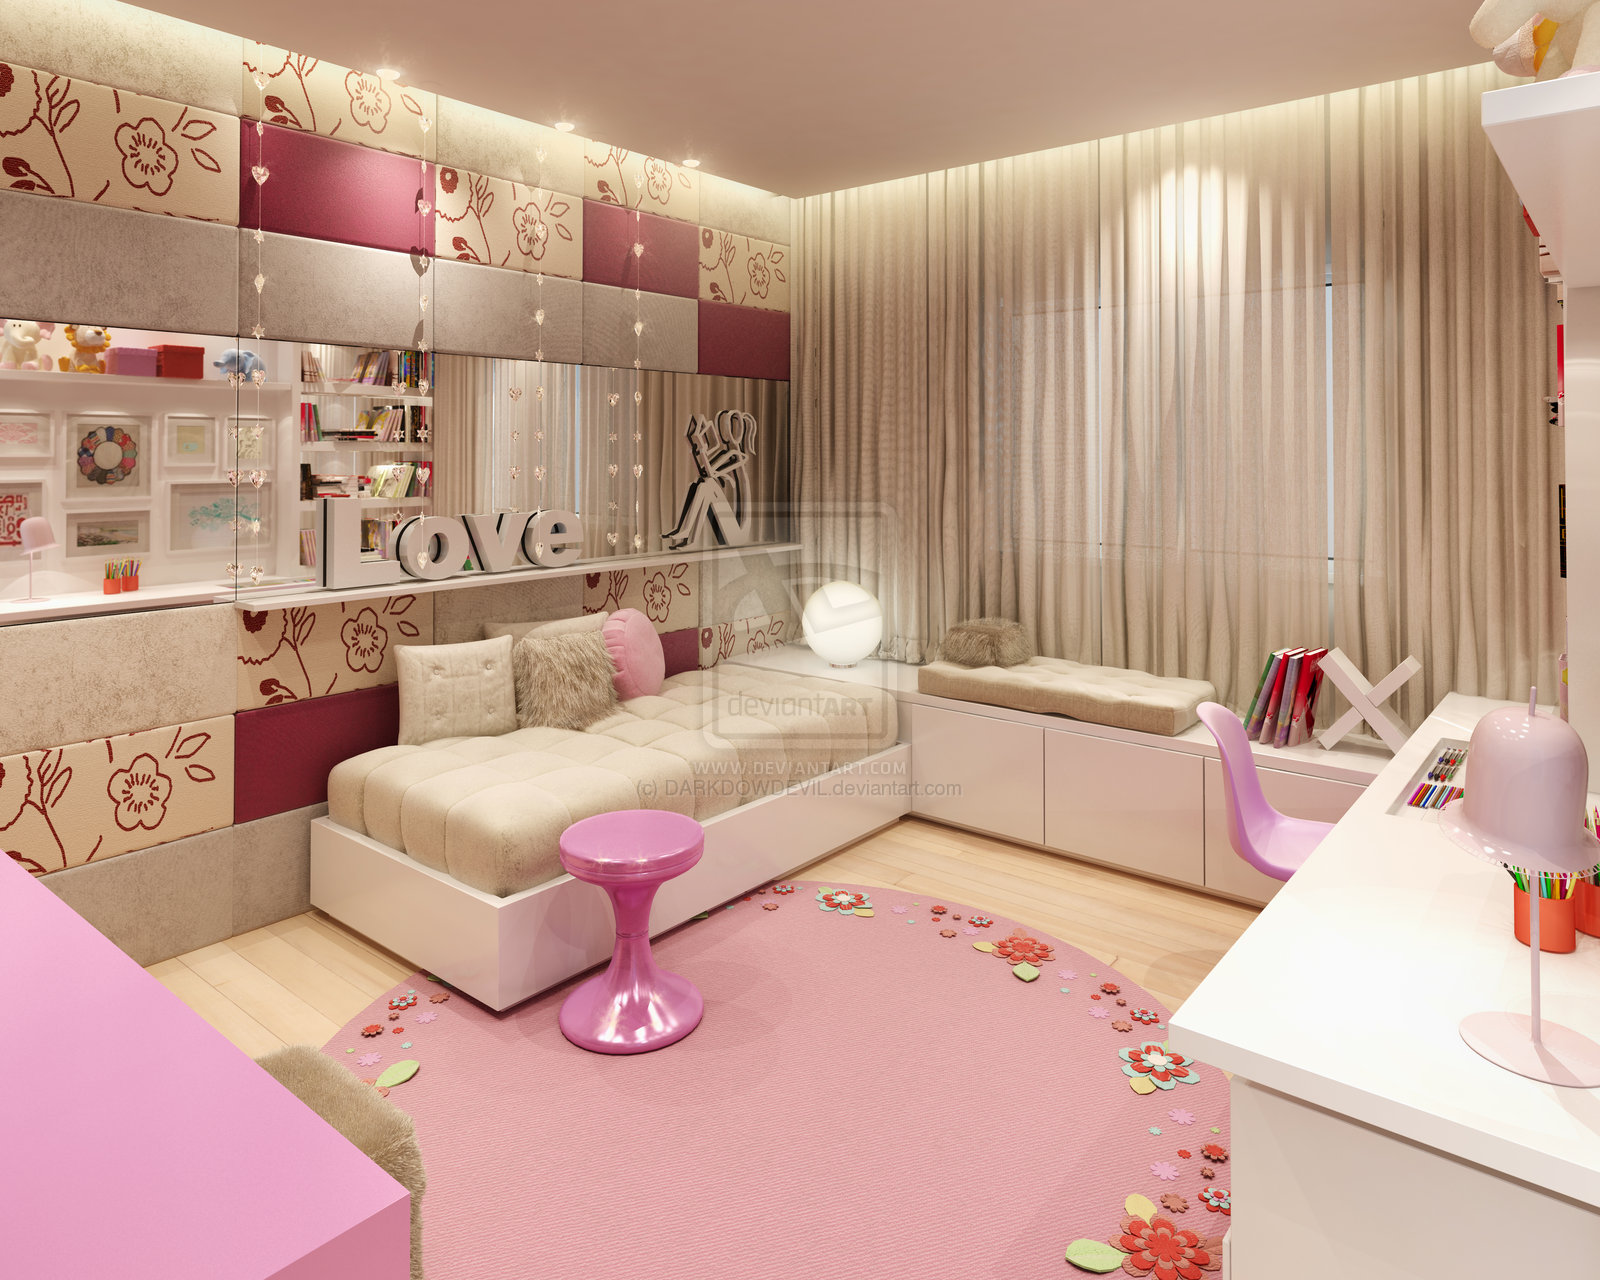 Girls bedroom accessories kid bedroom sets for Room decor ideas teenage girl